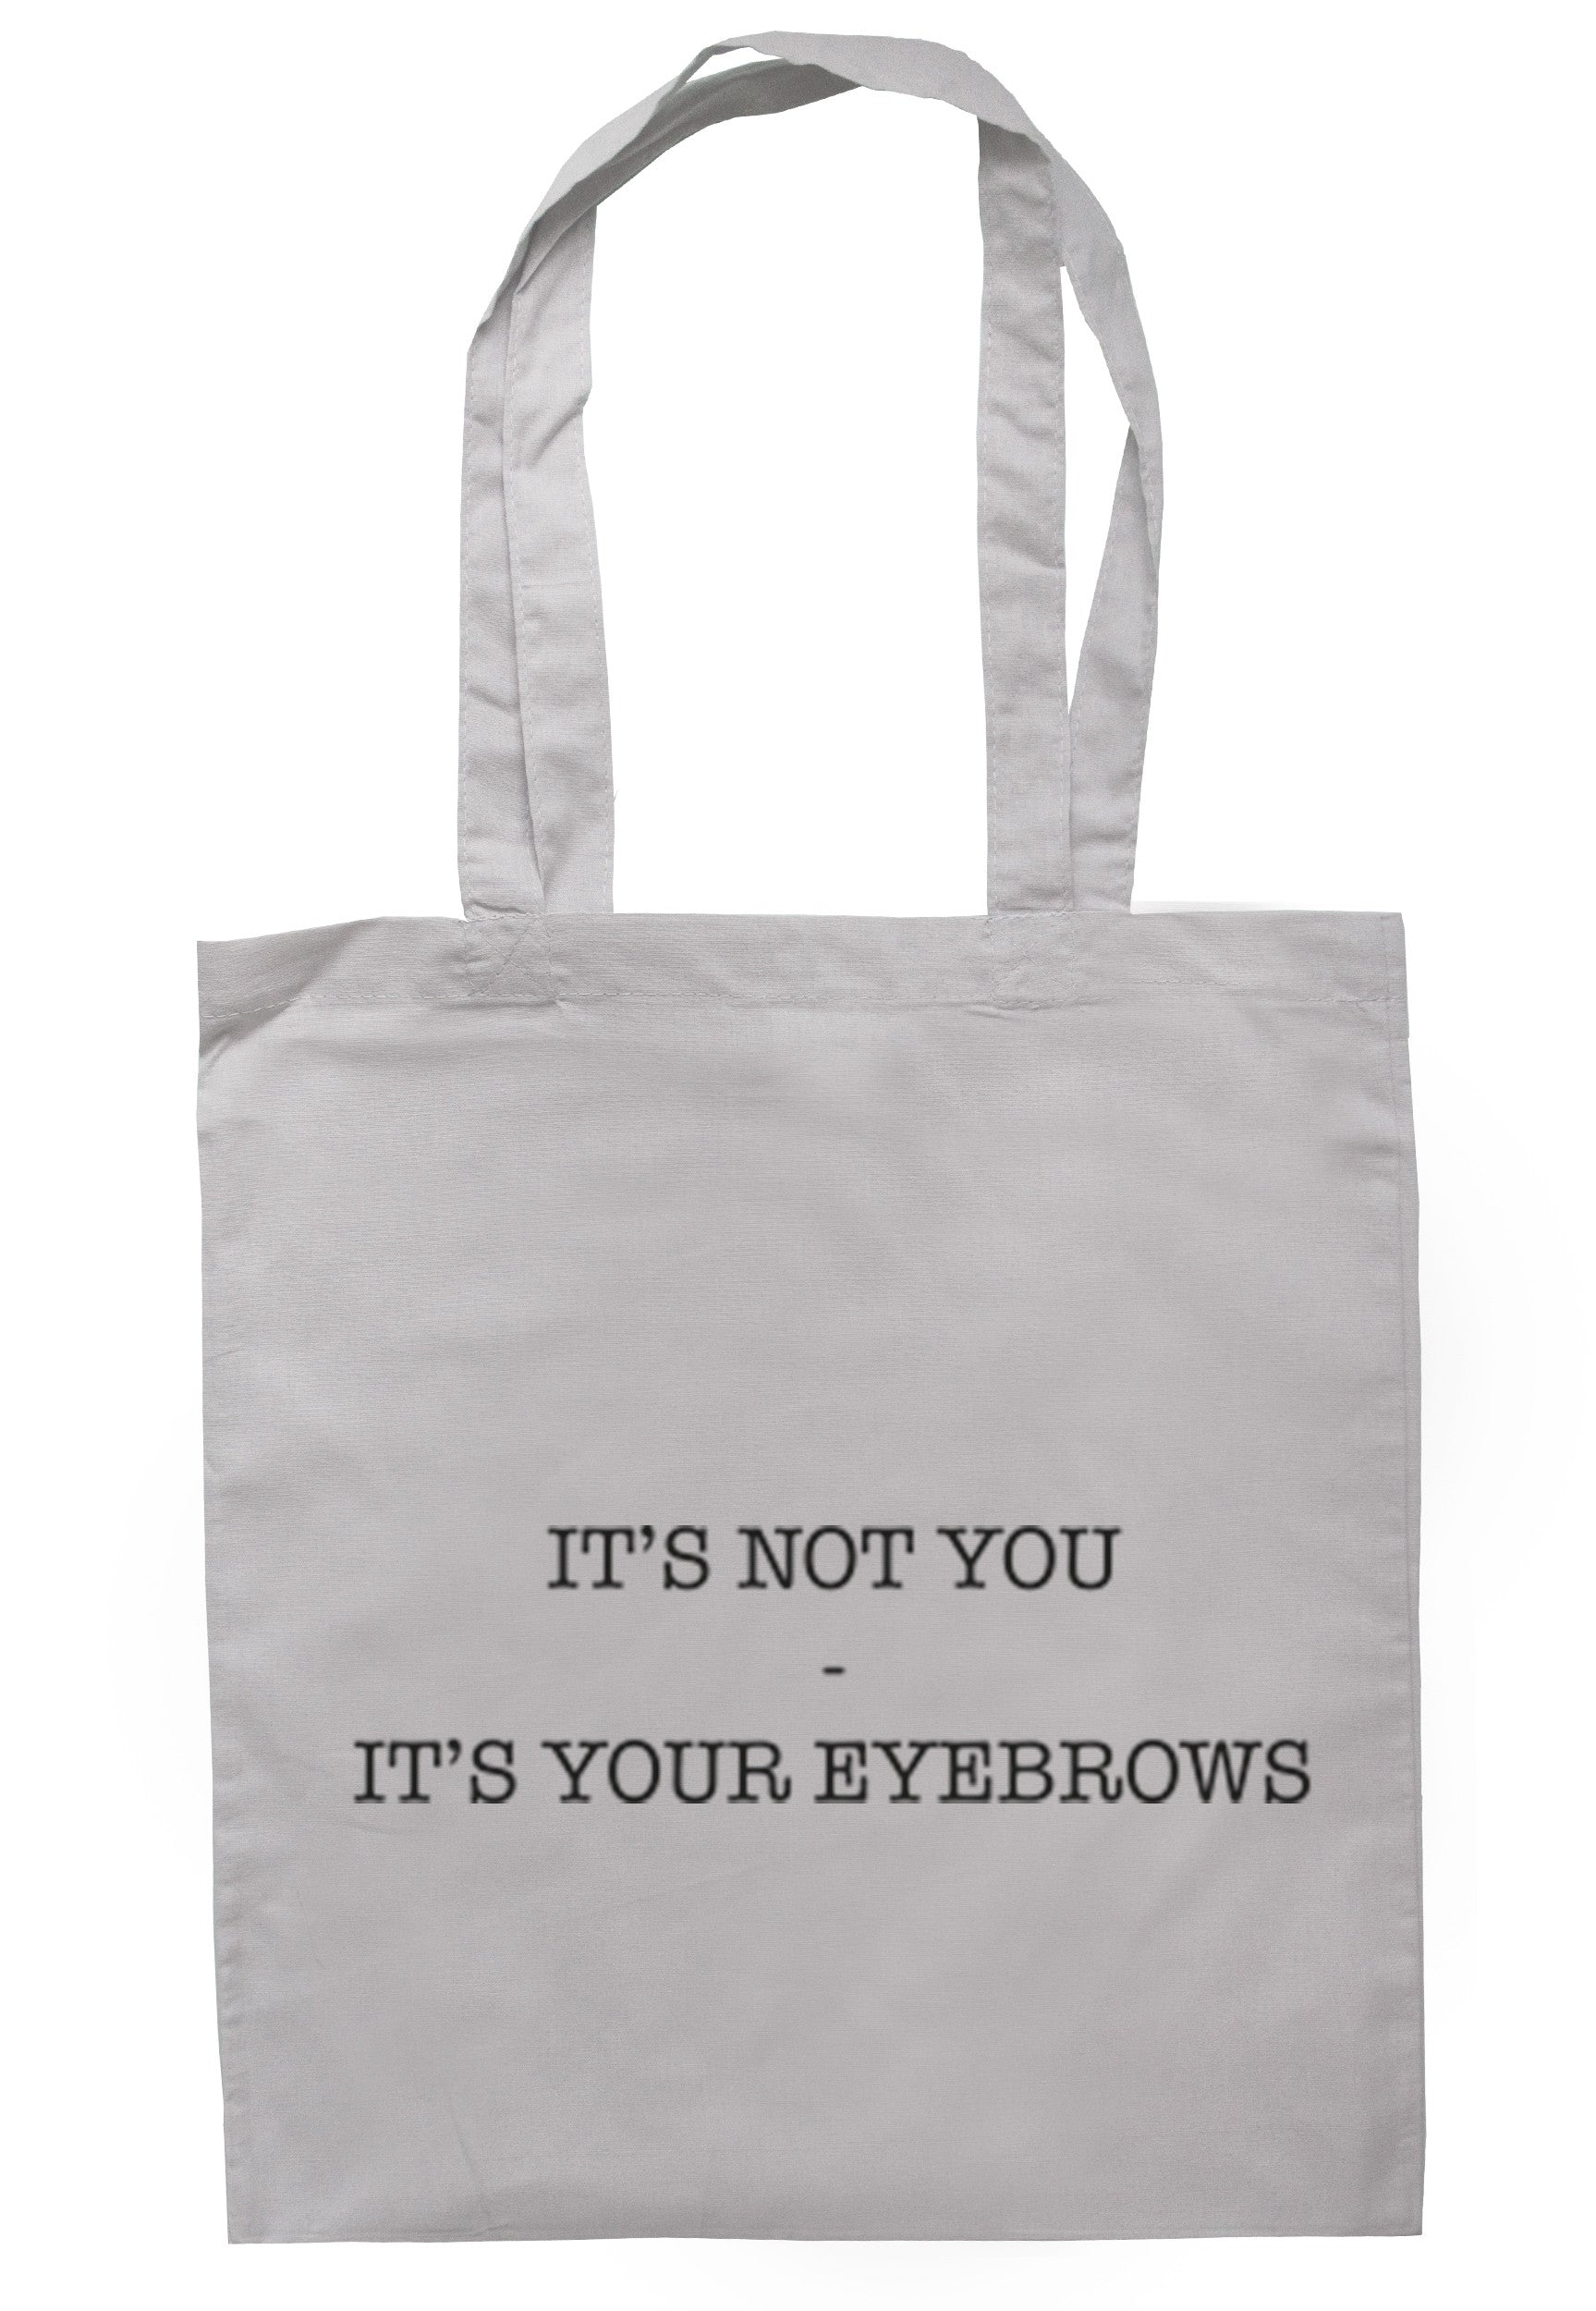 It's Not You It's Your Eyebrows Tote Bag TB0242 - Illustrated Identity Ltd.